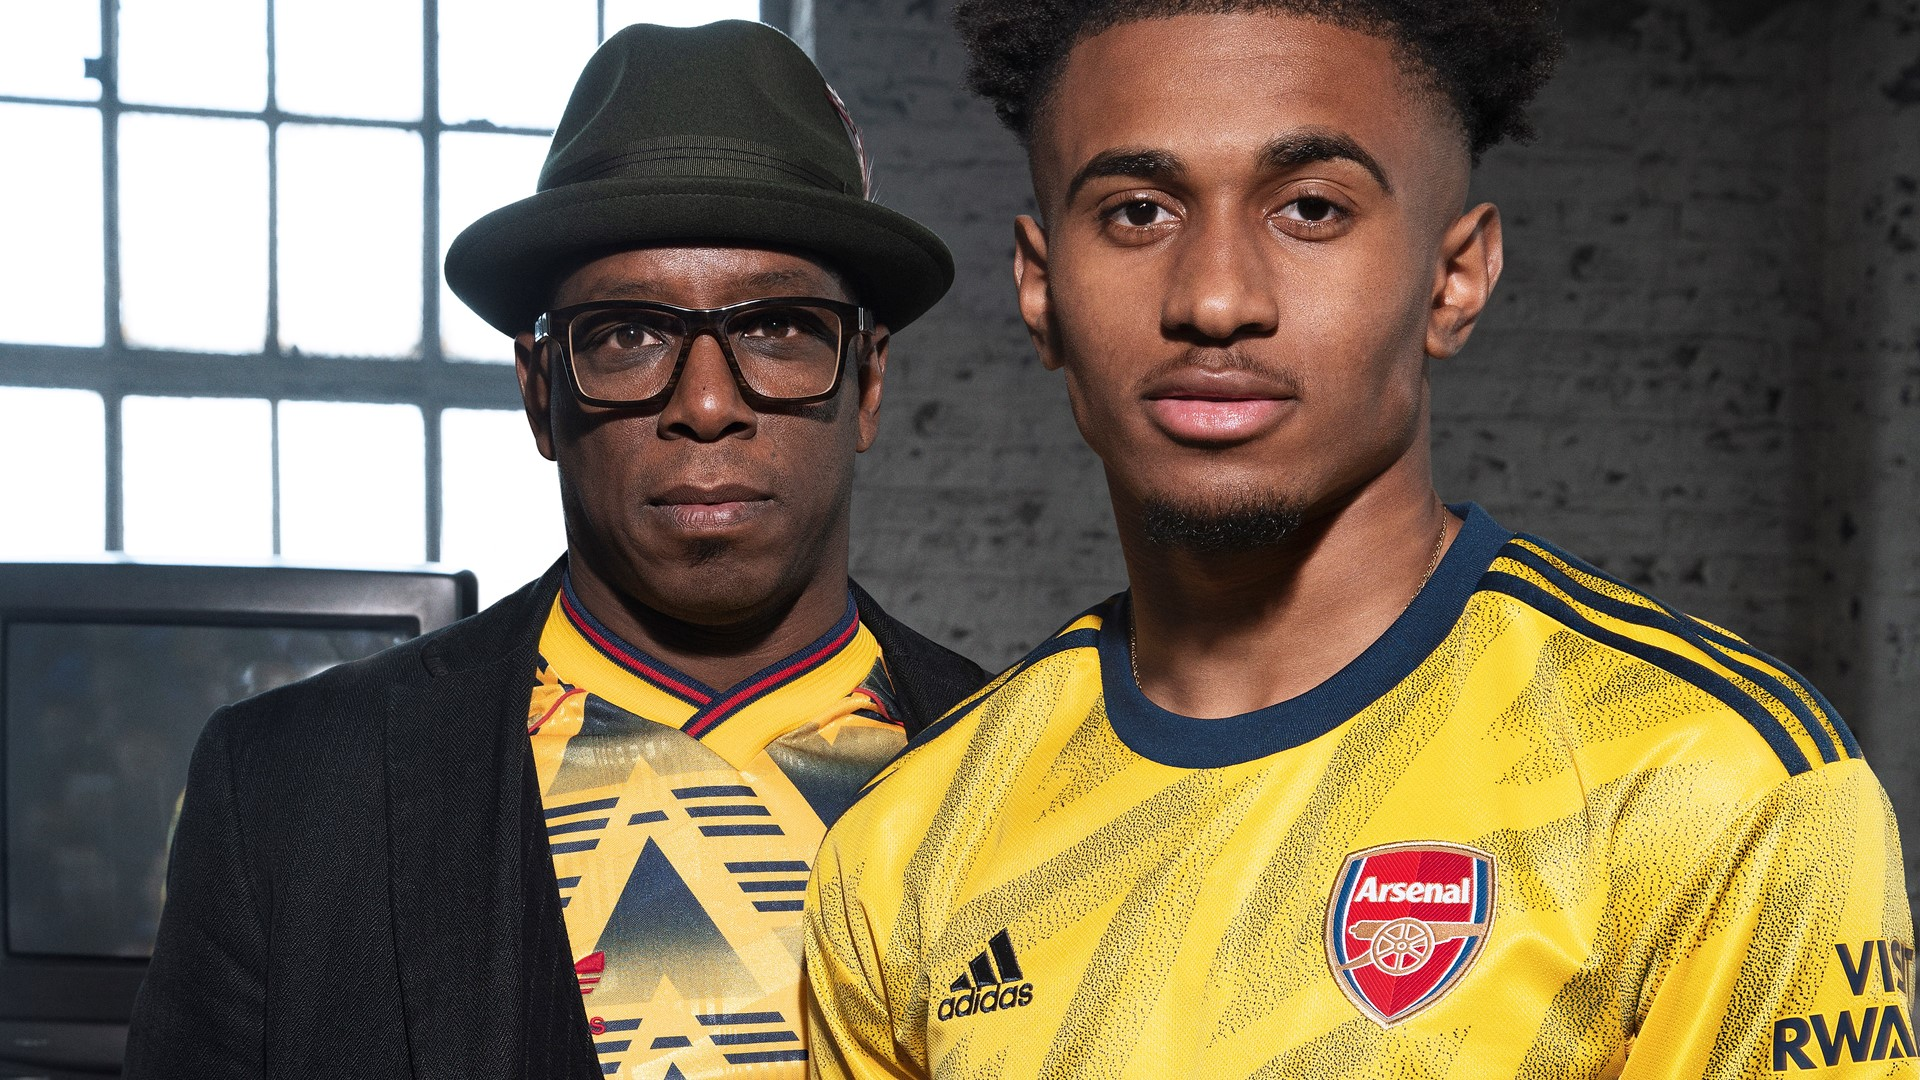 timeless design 2910b 1f800 adidas Football and Arsenal Reveal 2019/20 Away Kit